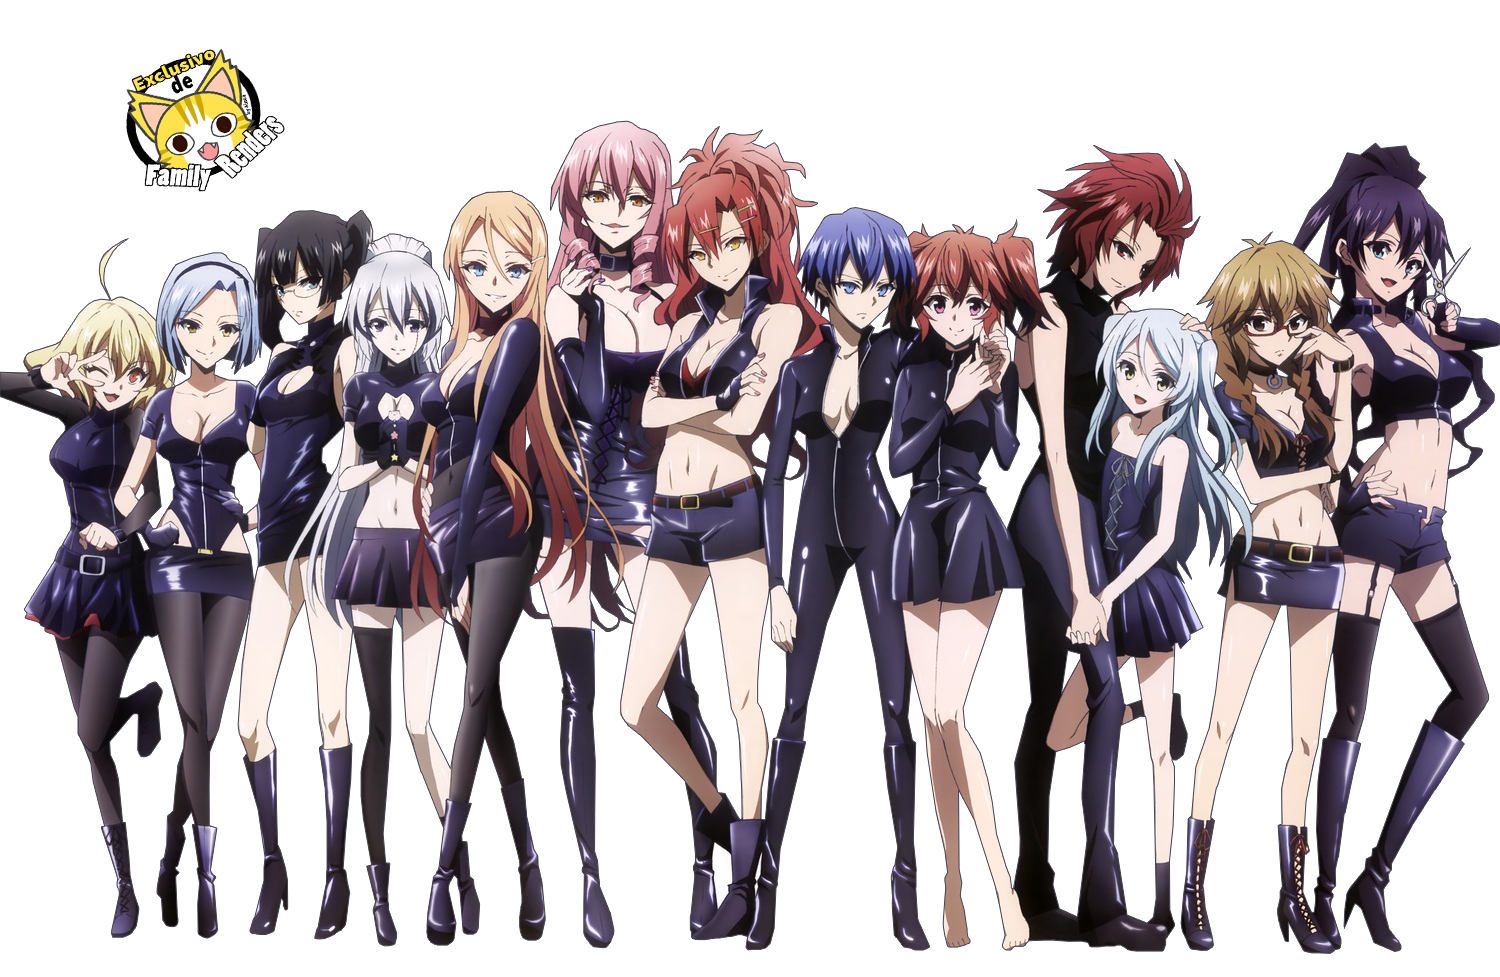 PNG-Grupal Akuma no Riddle